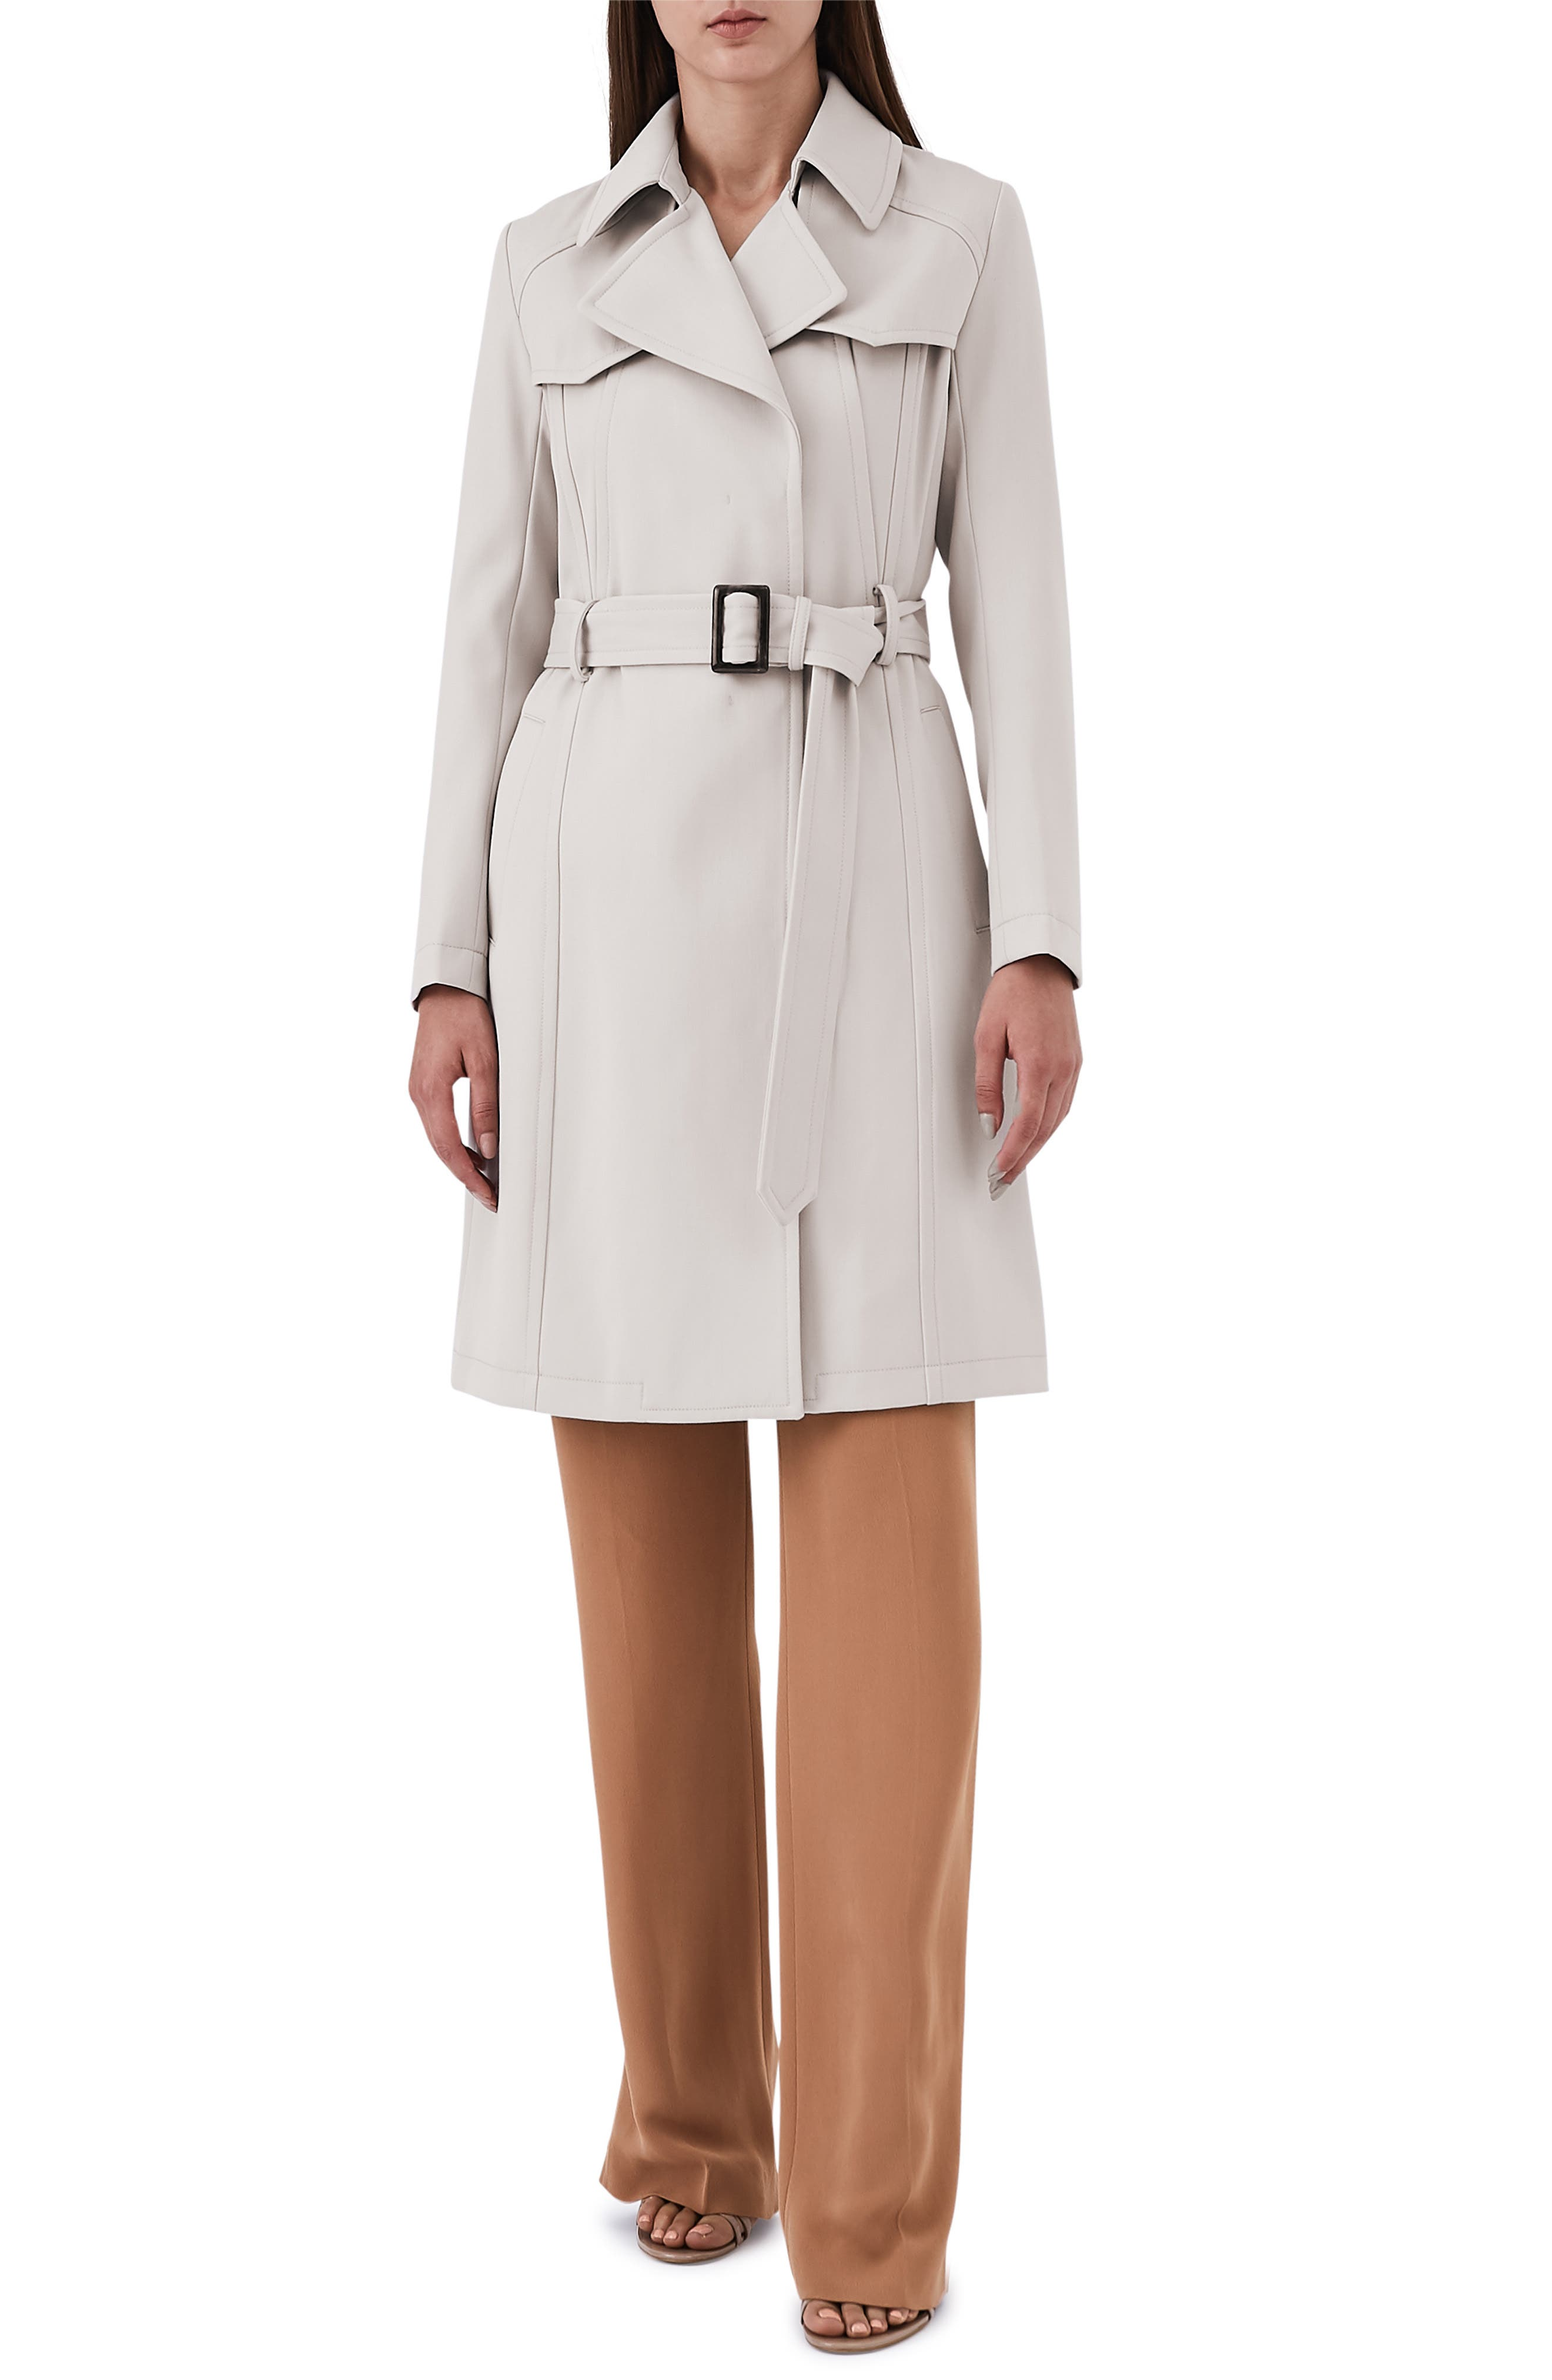 Hurley Belted Wool Blend Coat,                             Main thumbnail 1, color,                             NEUTRAL